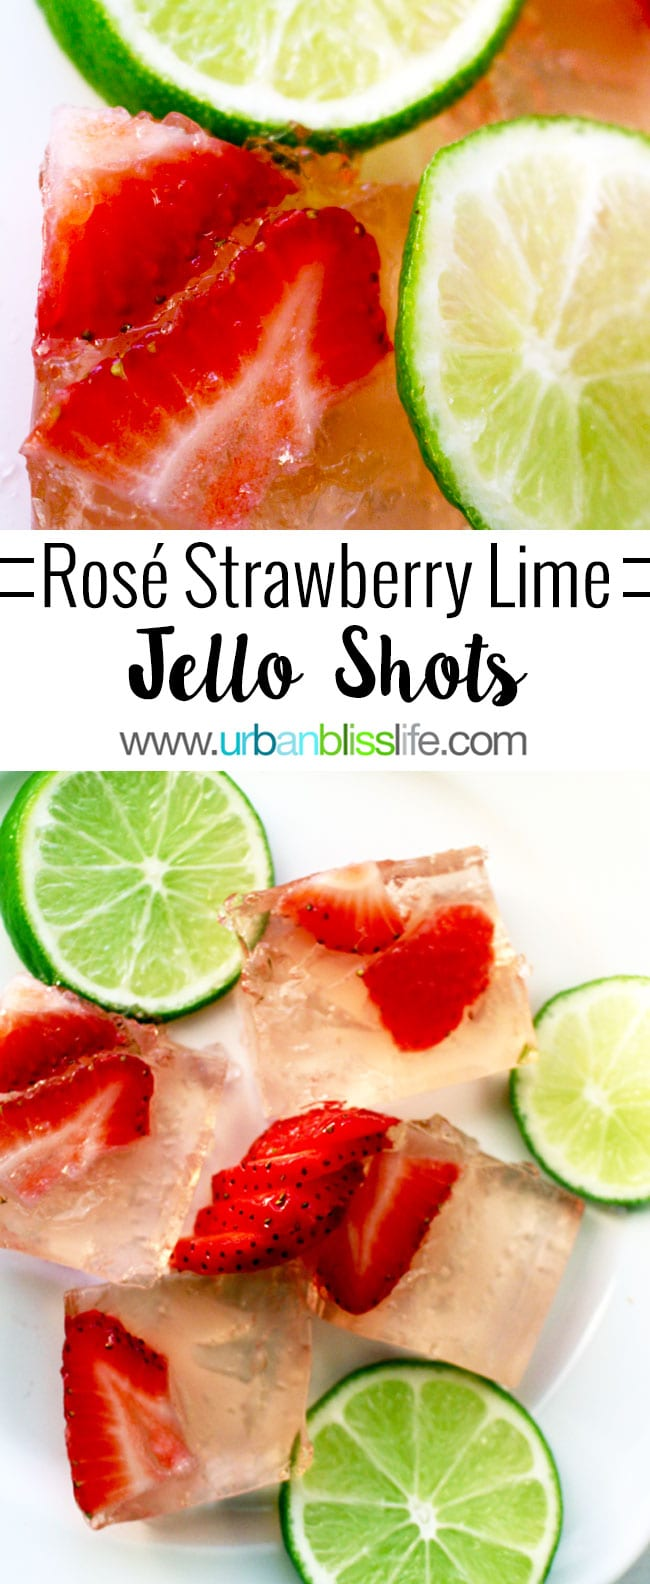 Strawberry Jello Shots with Rosé and Lime recipe on UrbanBlissLife.com